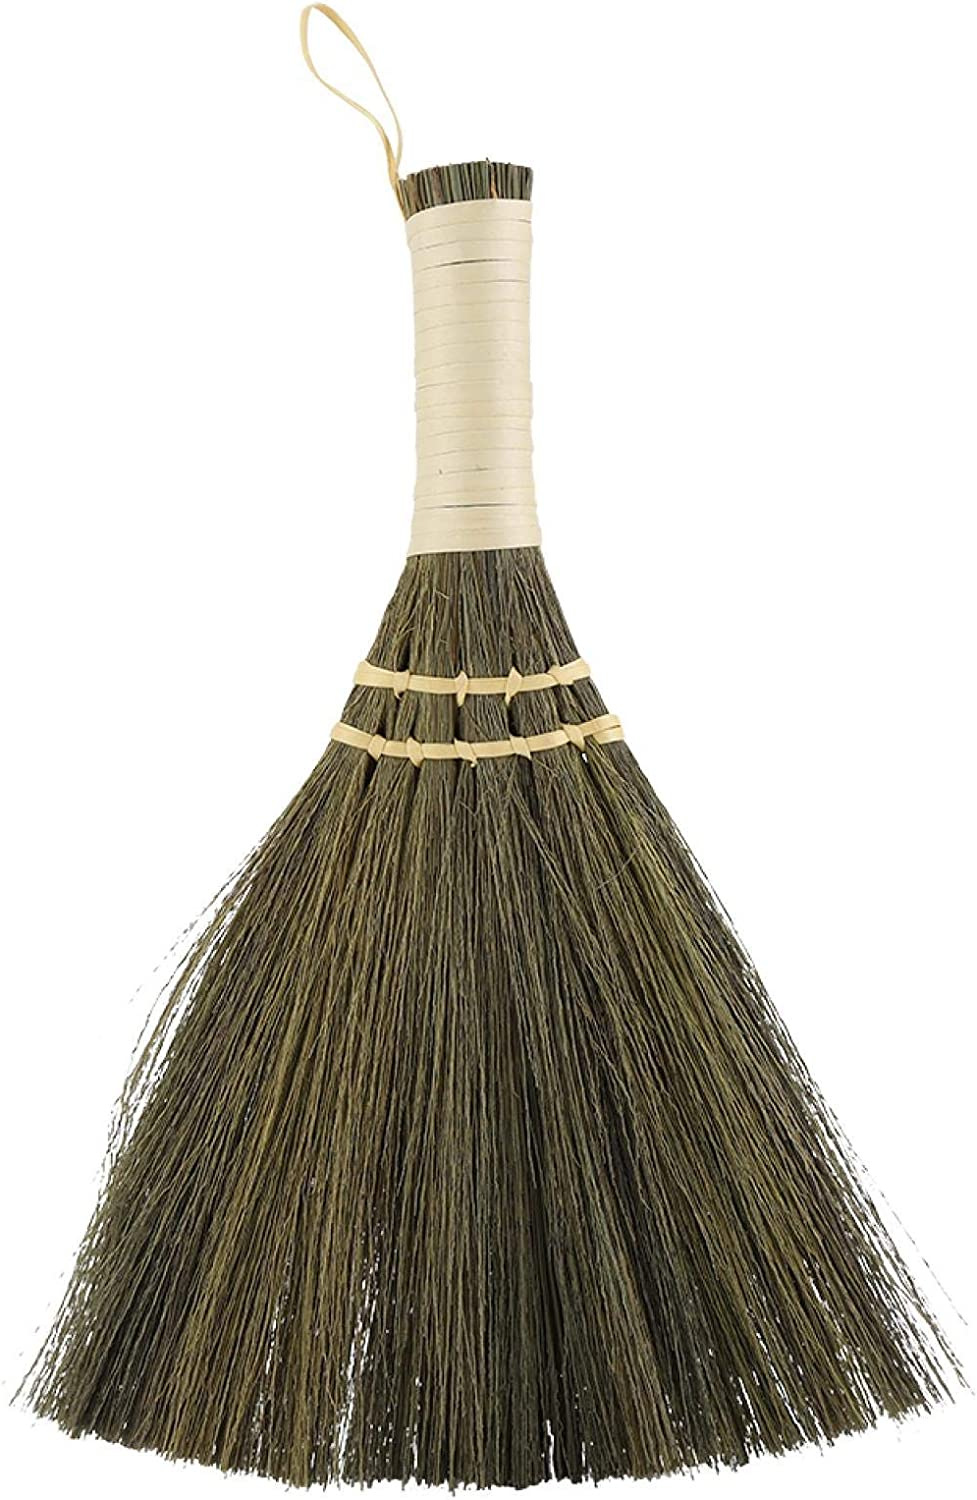 Manual Small Broom Soft Cleaning for with Super intense New Orleans Mall SALE Handle Sweeping